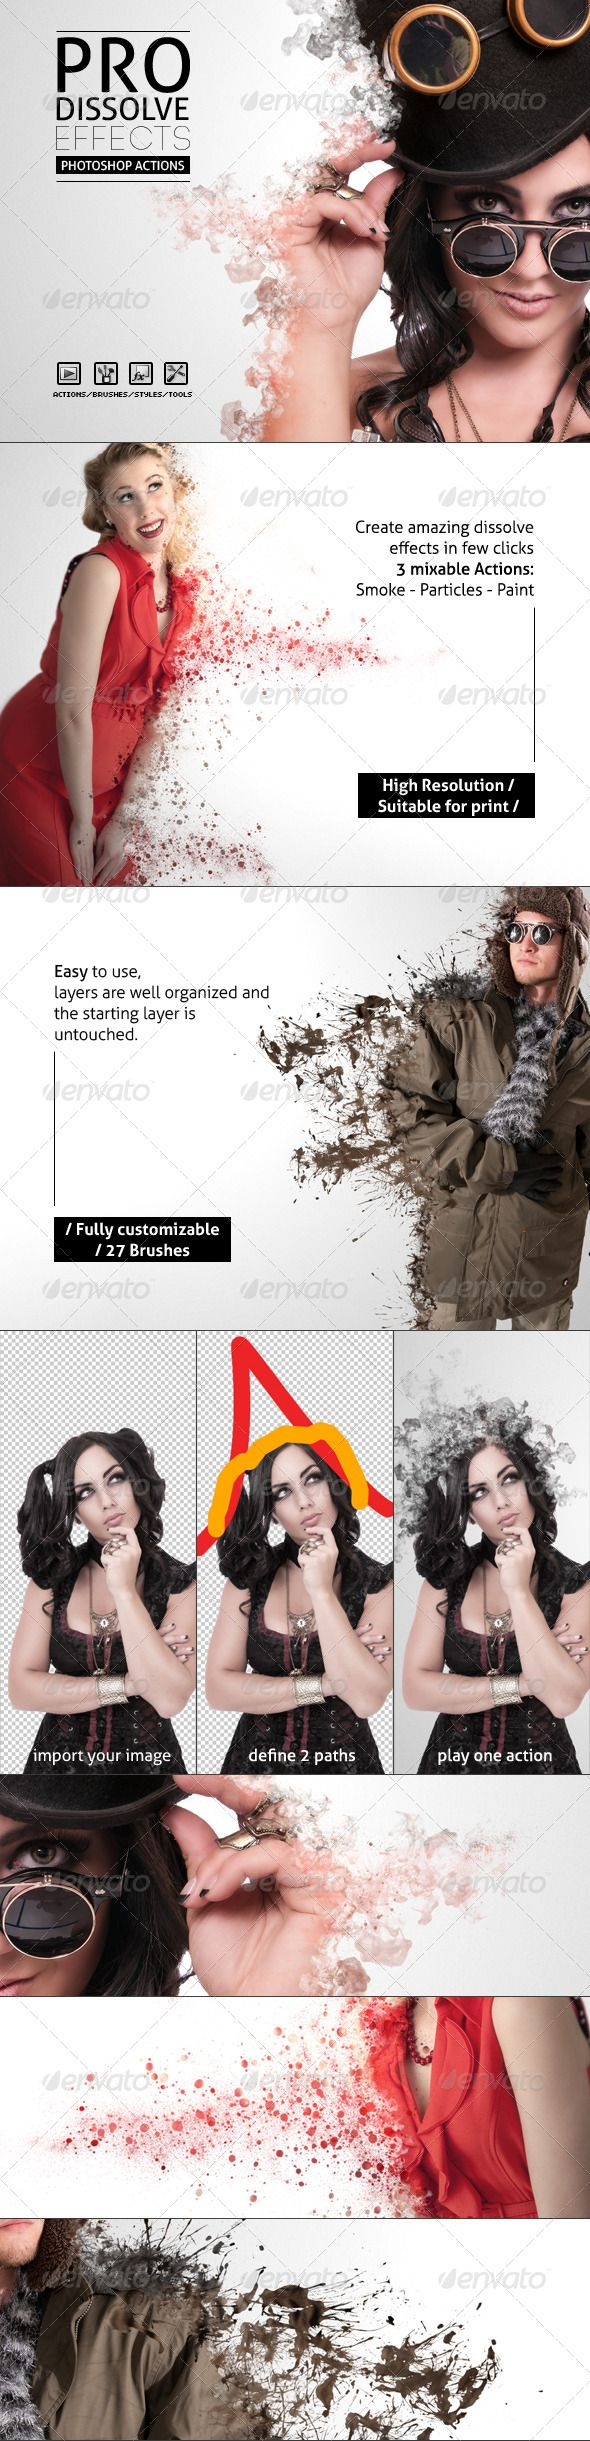 Pro Dissolve Effects - Photoshop Actions --- Generate amazing dissolve effects automatically from your images in few clicks, great to use on people, objects, designs and titles.  The effects are randomly generated each time and are blendable between each other to get even more detail. The final shape is decided by the user simply drawing two paths before playing the action.